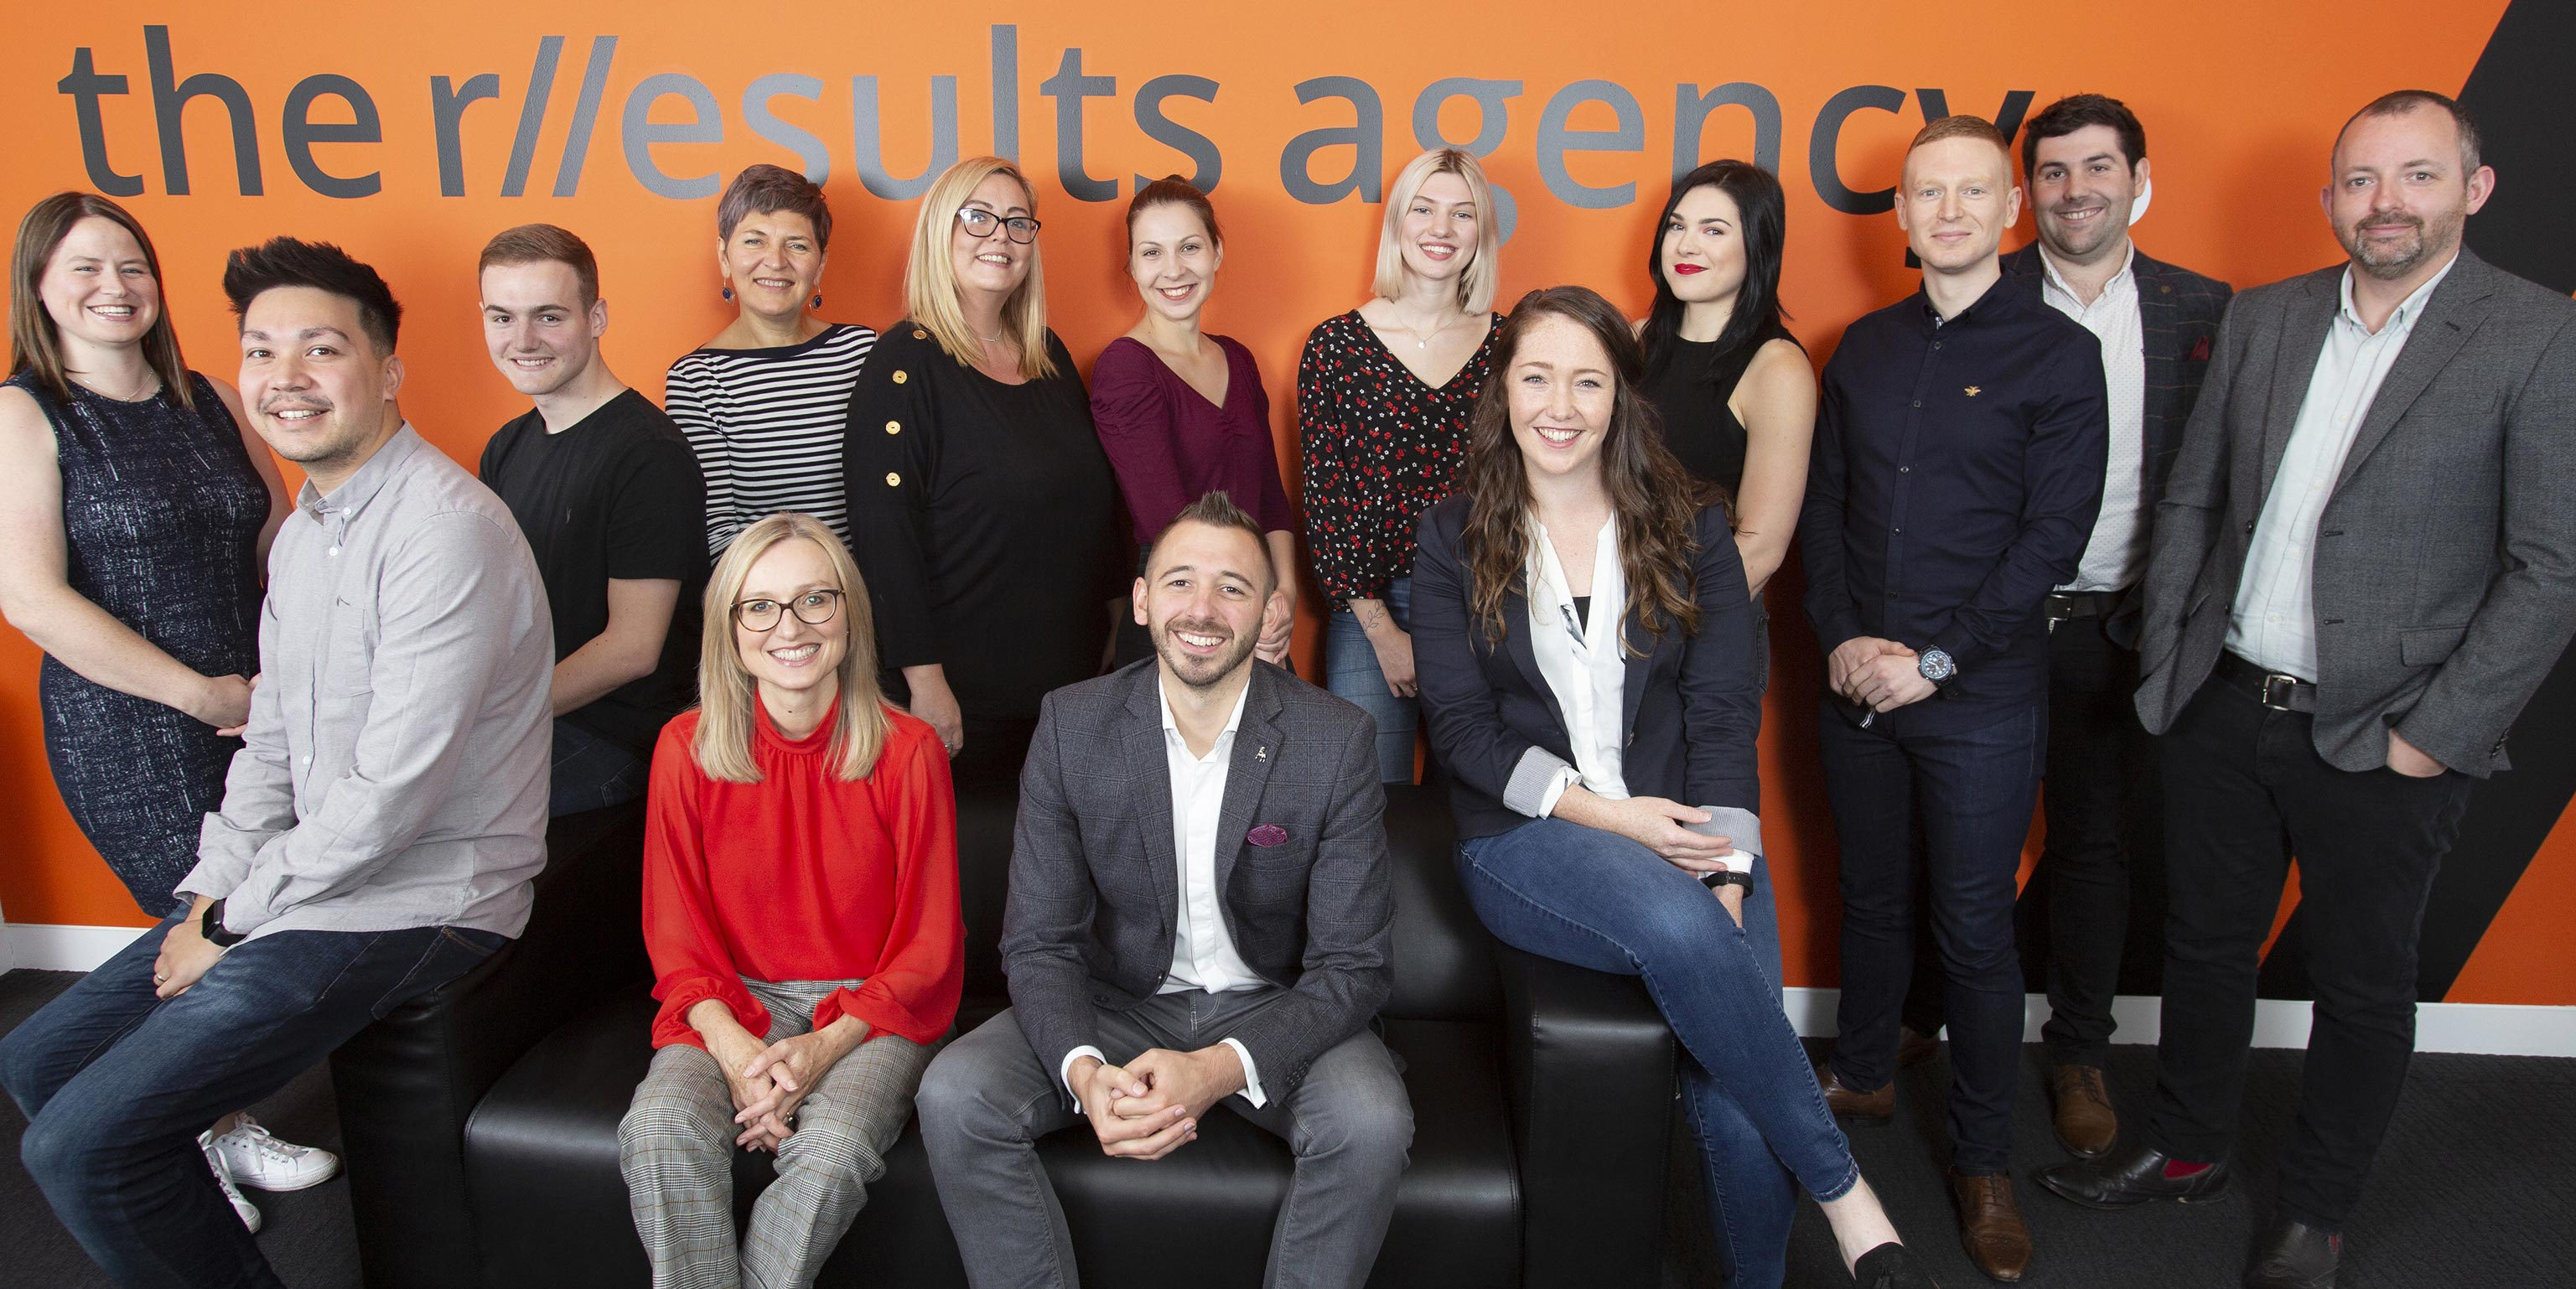 Our values - marketing agency Newcastle